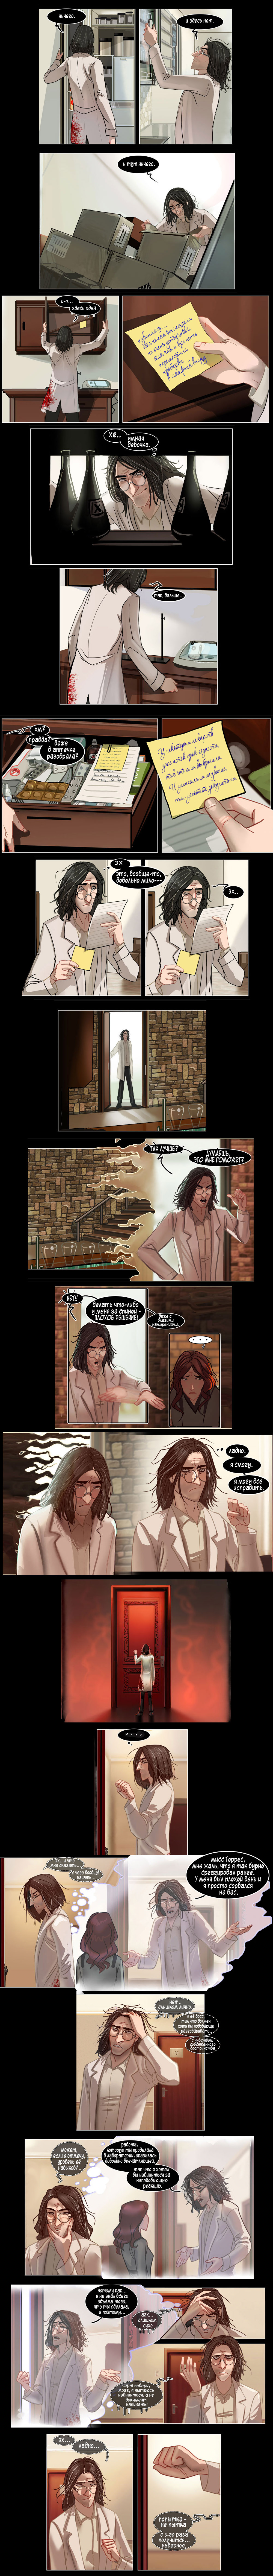 Комикс Blood Stain: выпуск №246